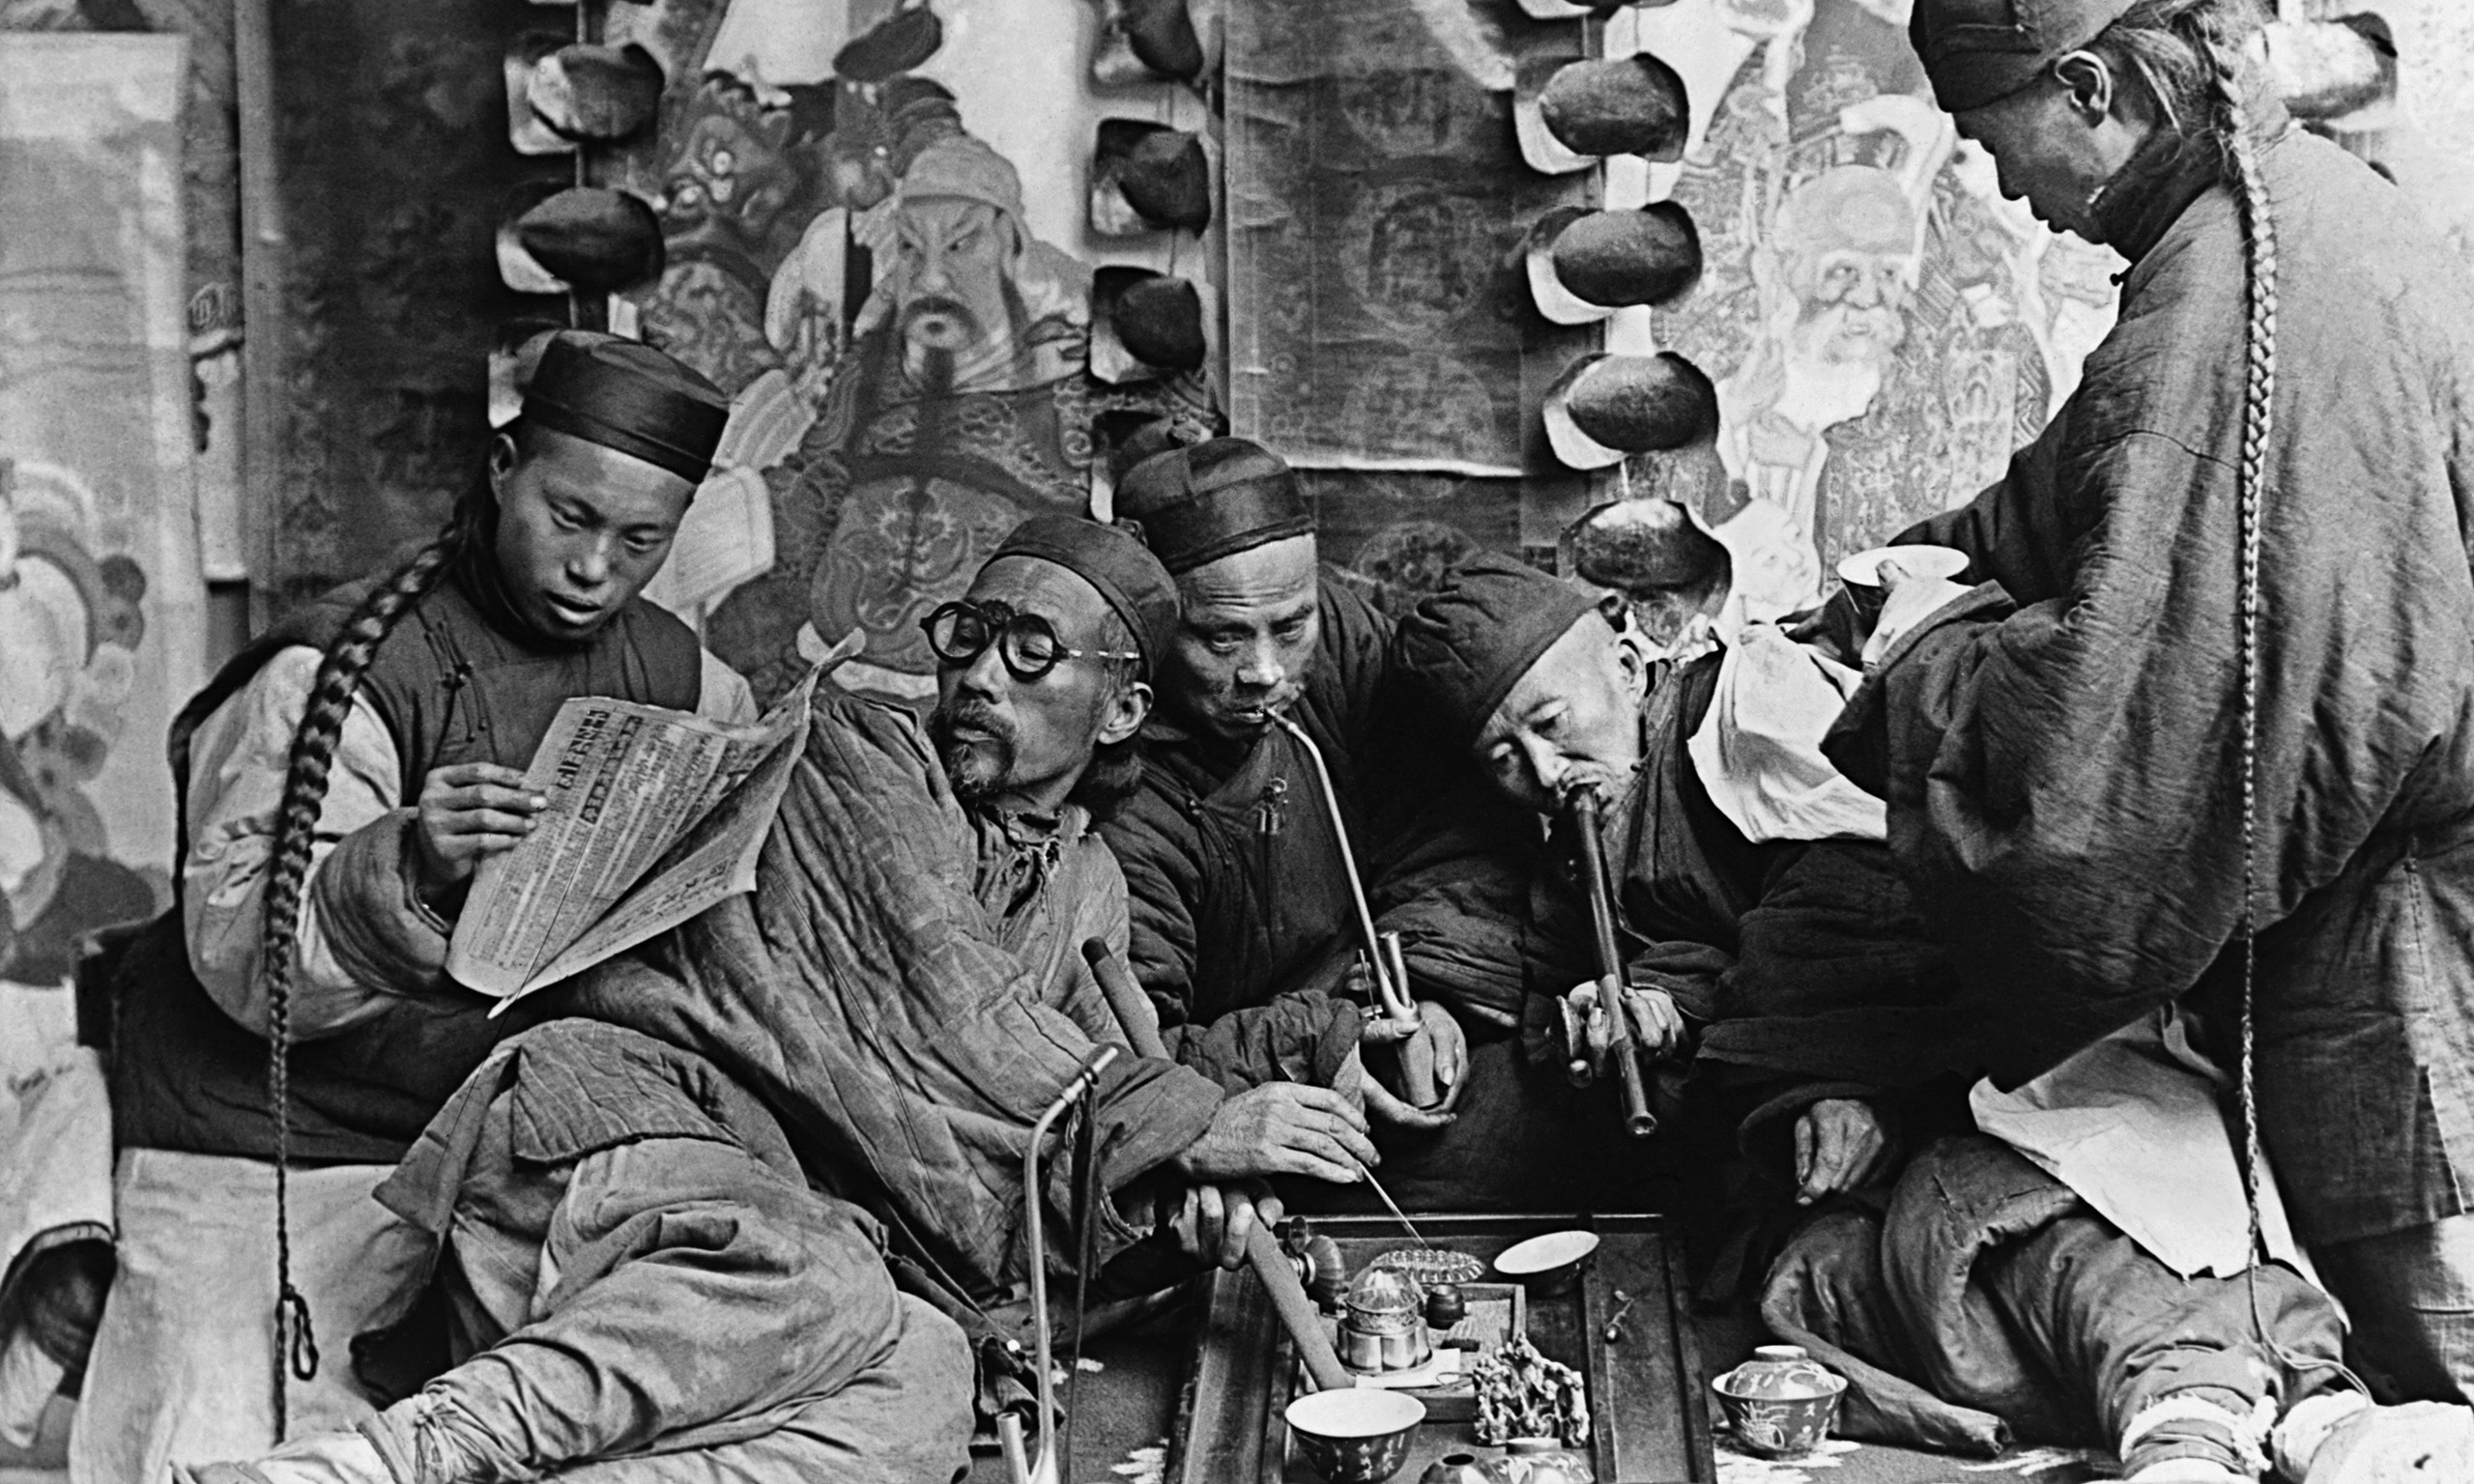 opium trade in china in the 18th century